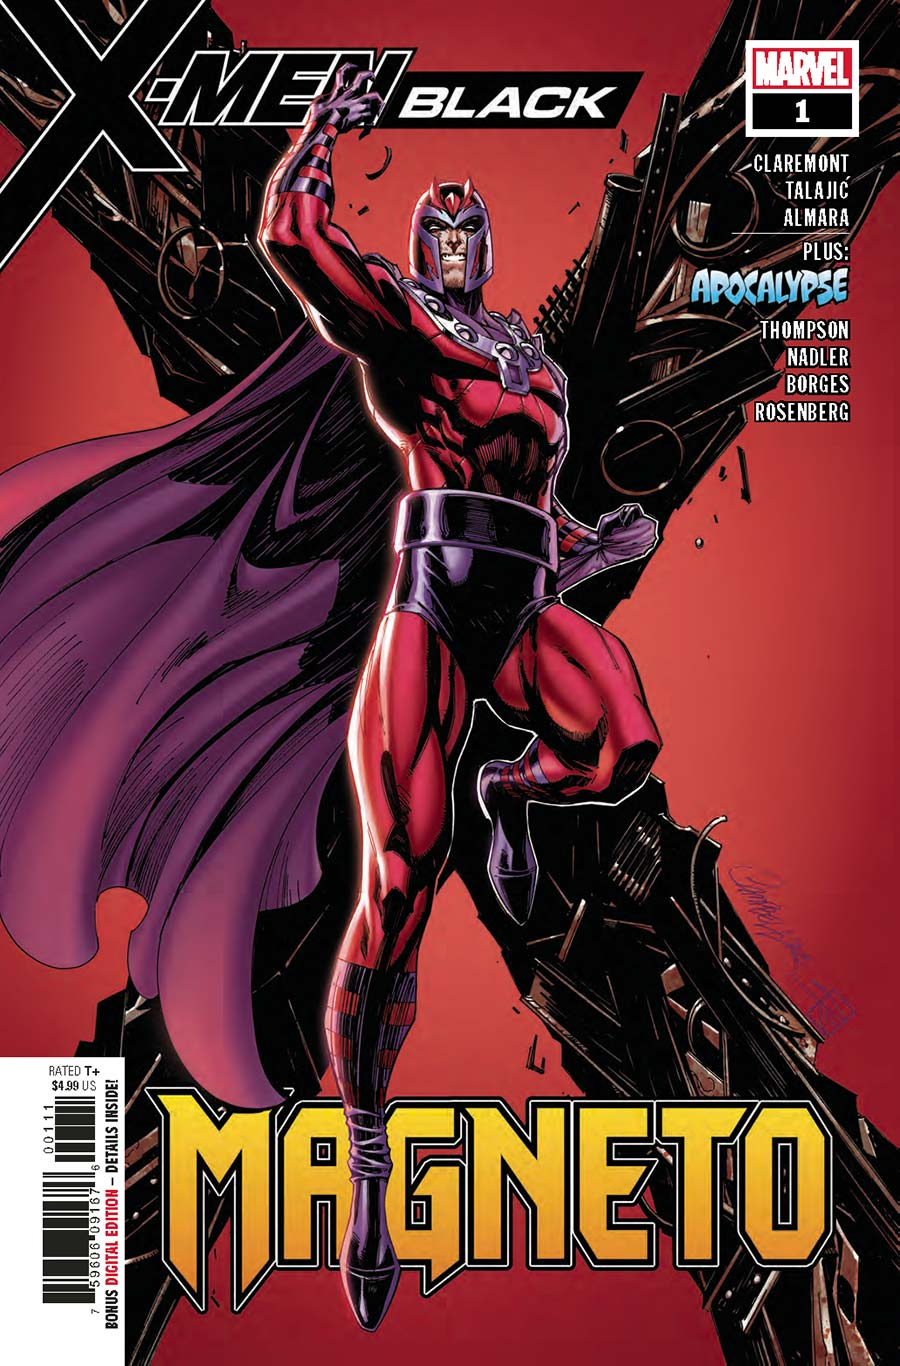 X-Men: Black - Magneto